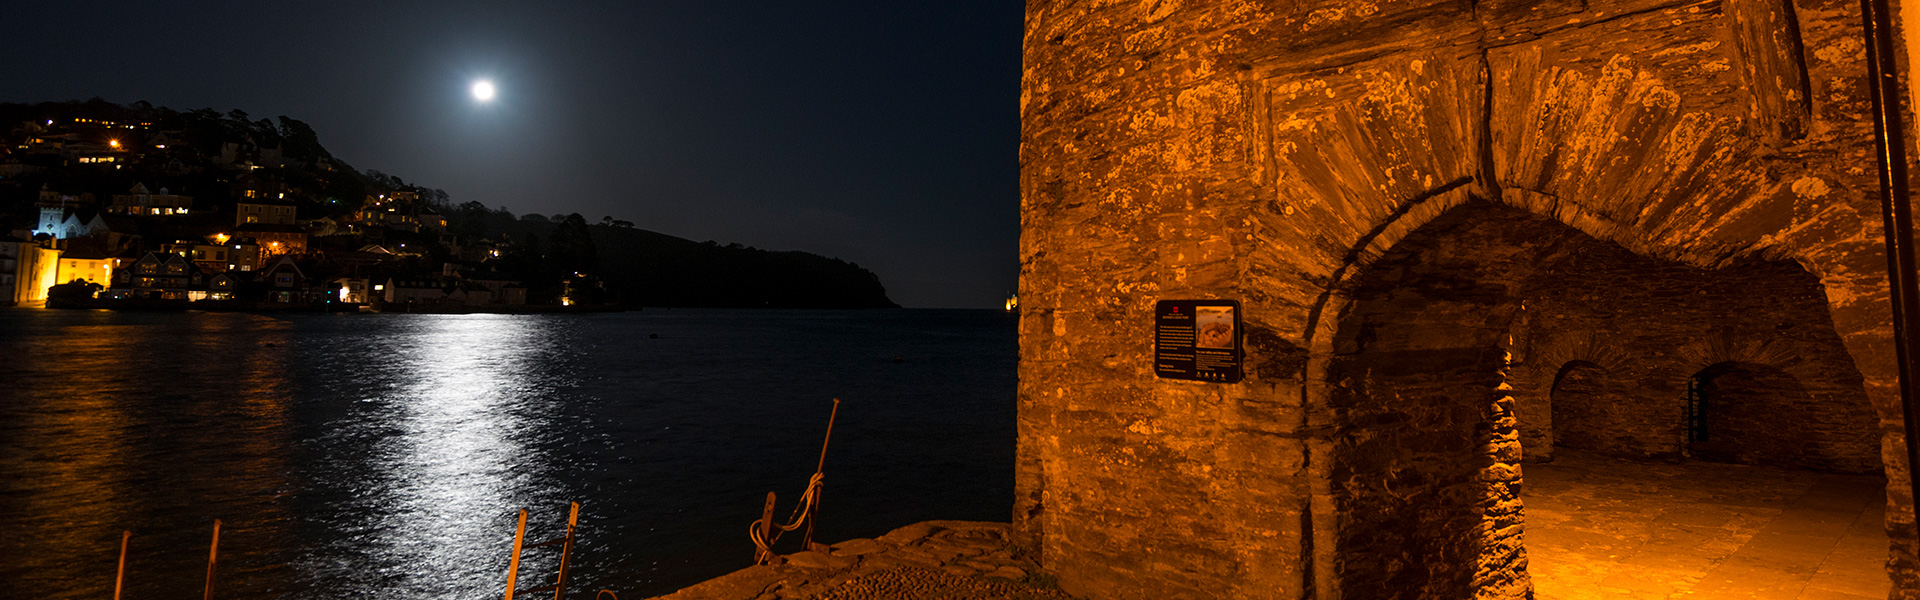 Slider: Bayard's Fort, Dartmouth, at Night